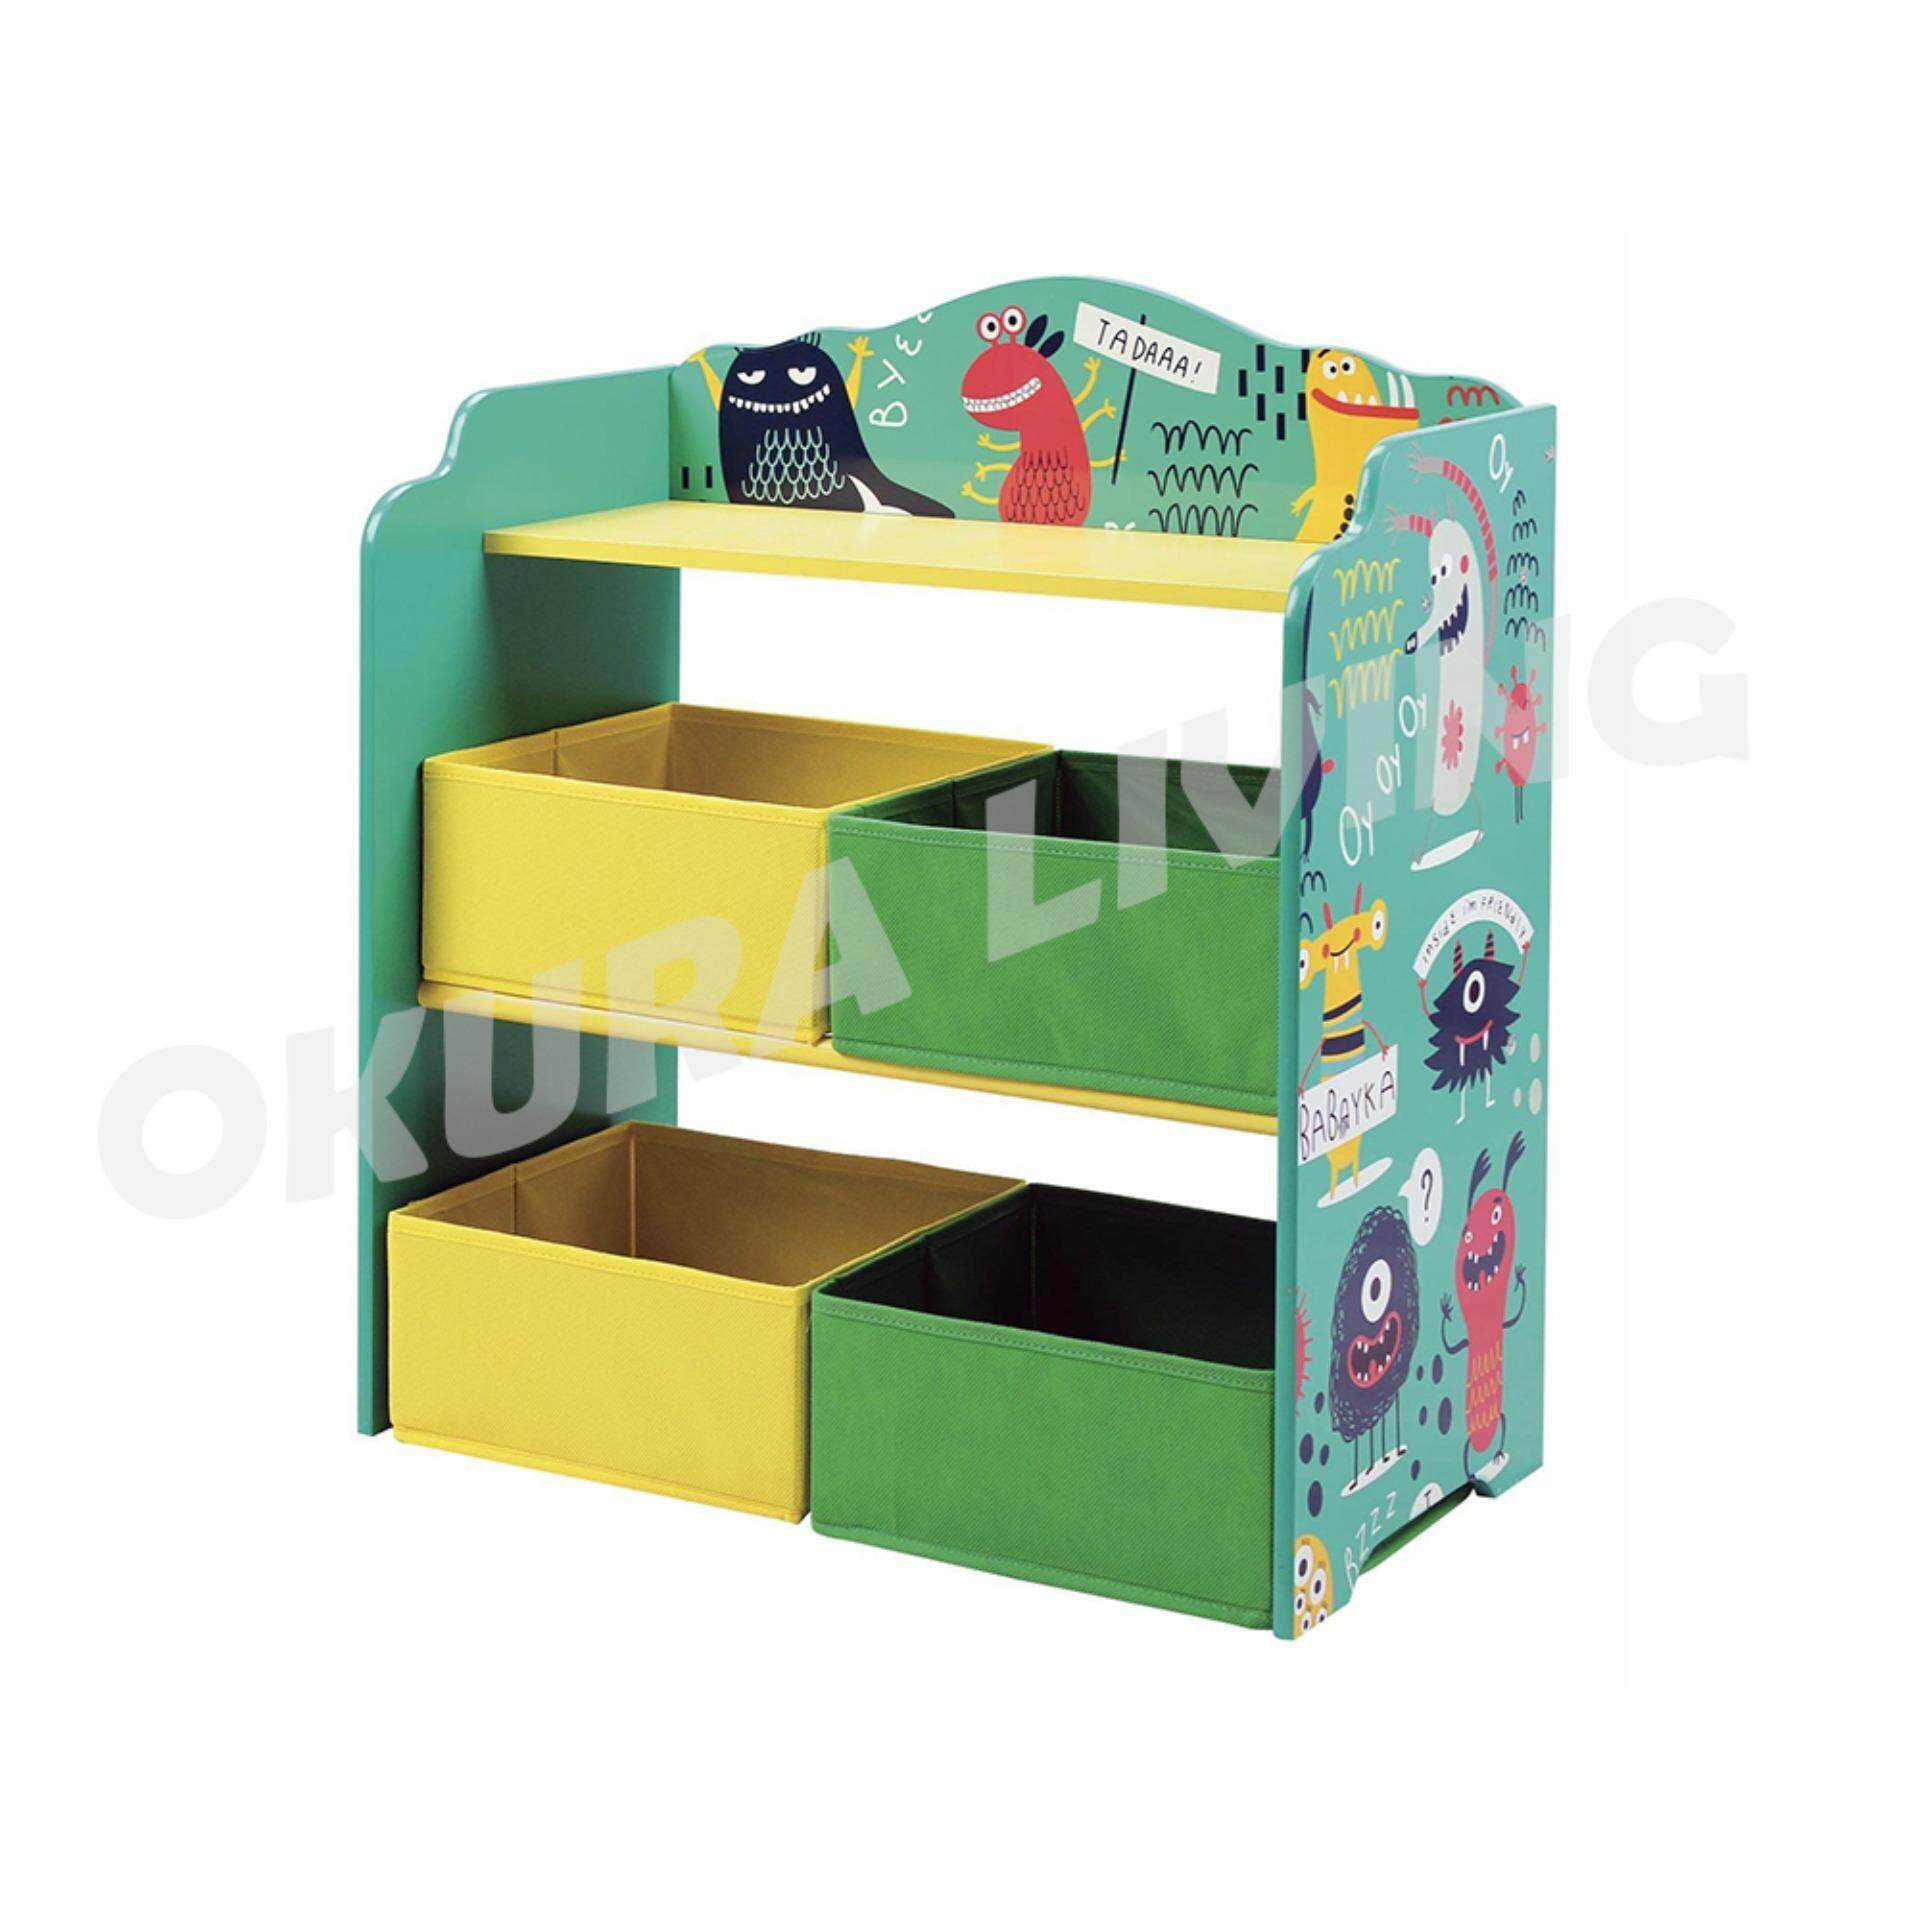 OKURA Kids Toy Organizer / Storage Rack with 4 Storage Box